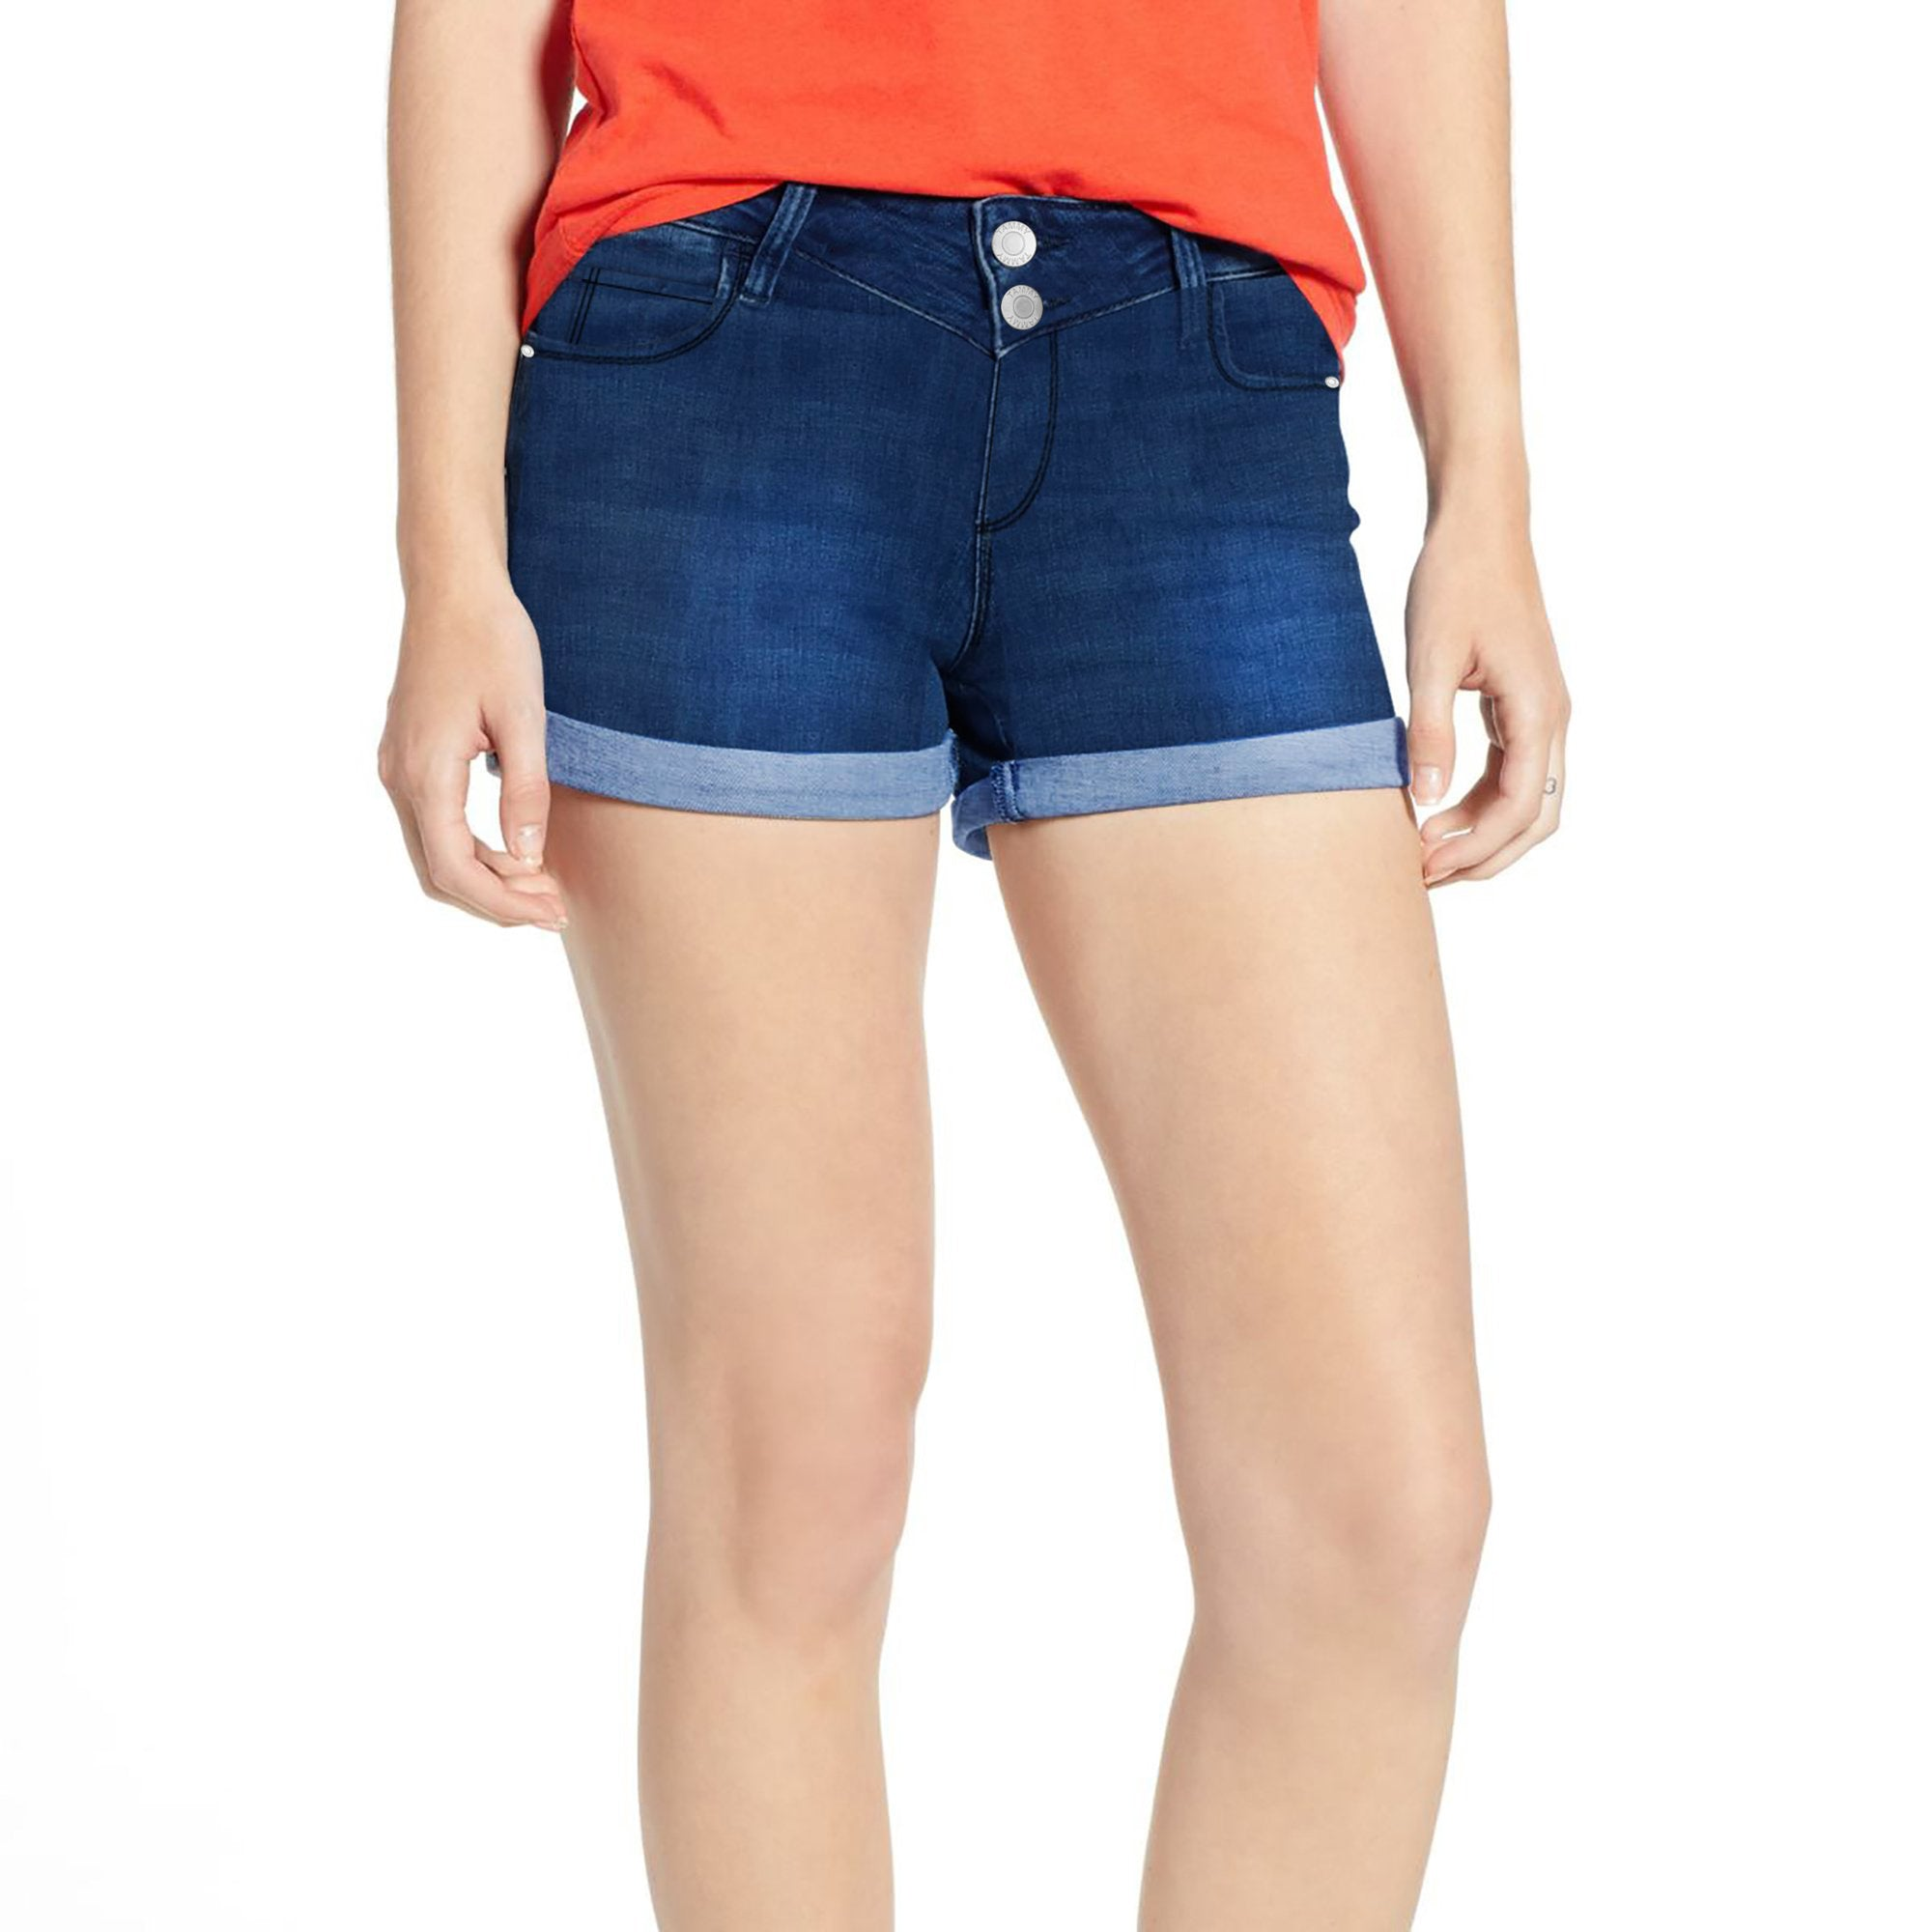 Tammy Girl Denim Short For Ladies-Dark Blue With Faded-SP110